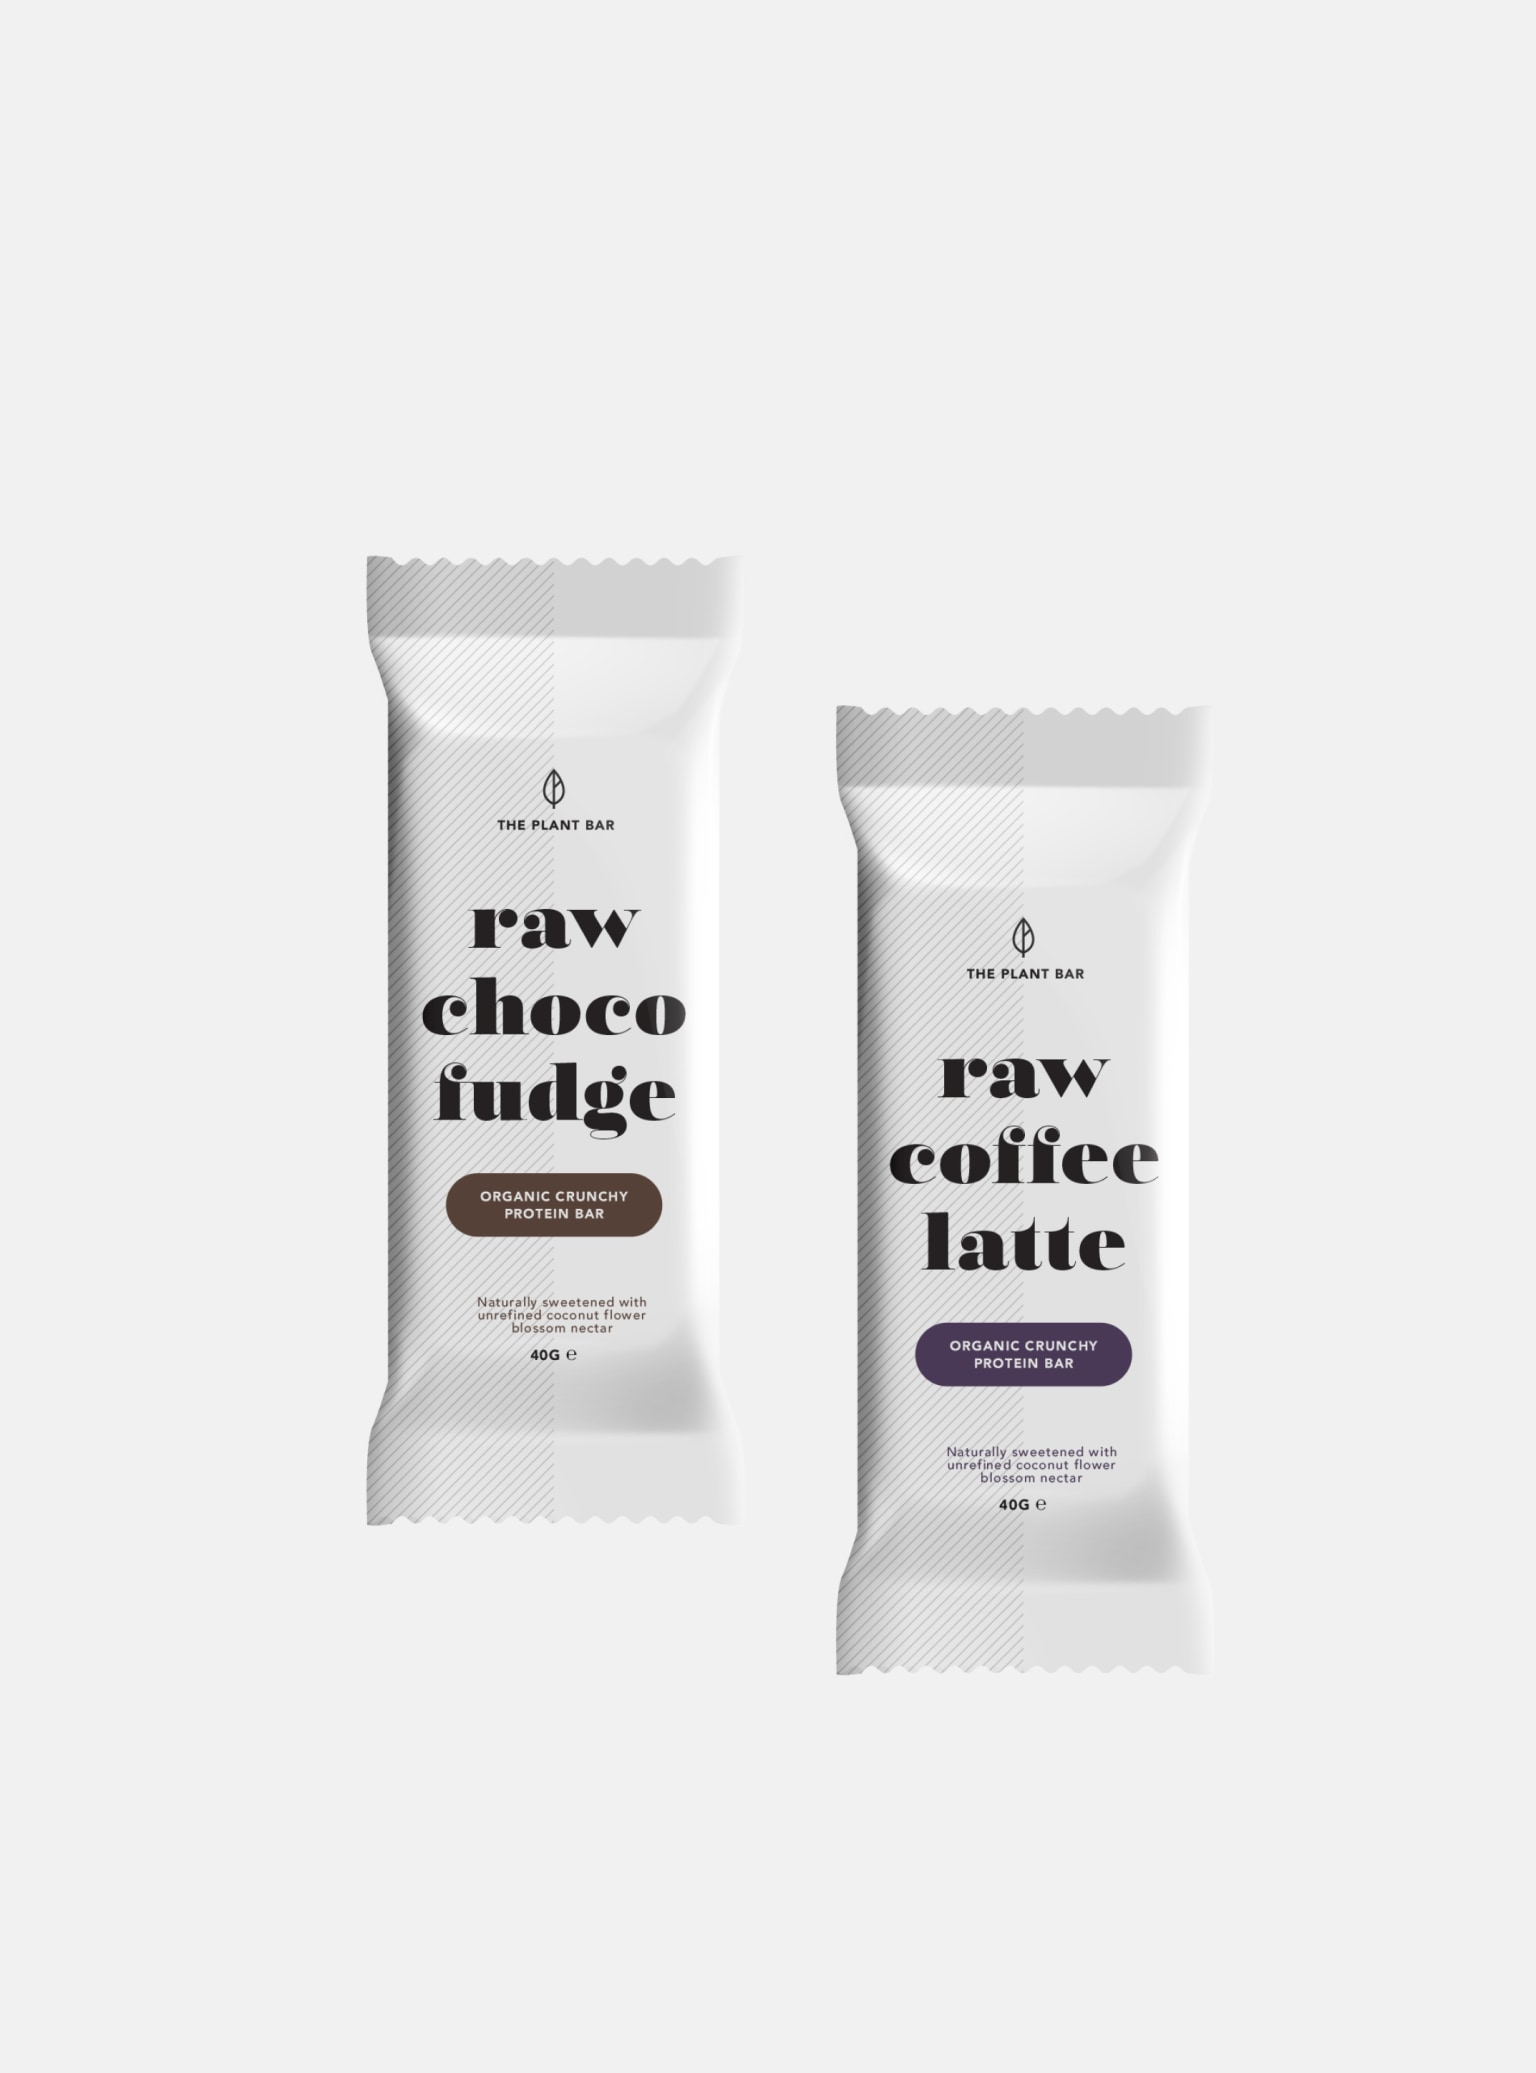 Raw, delightful, protein bars